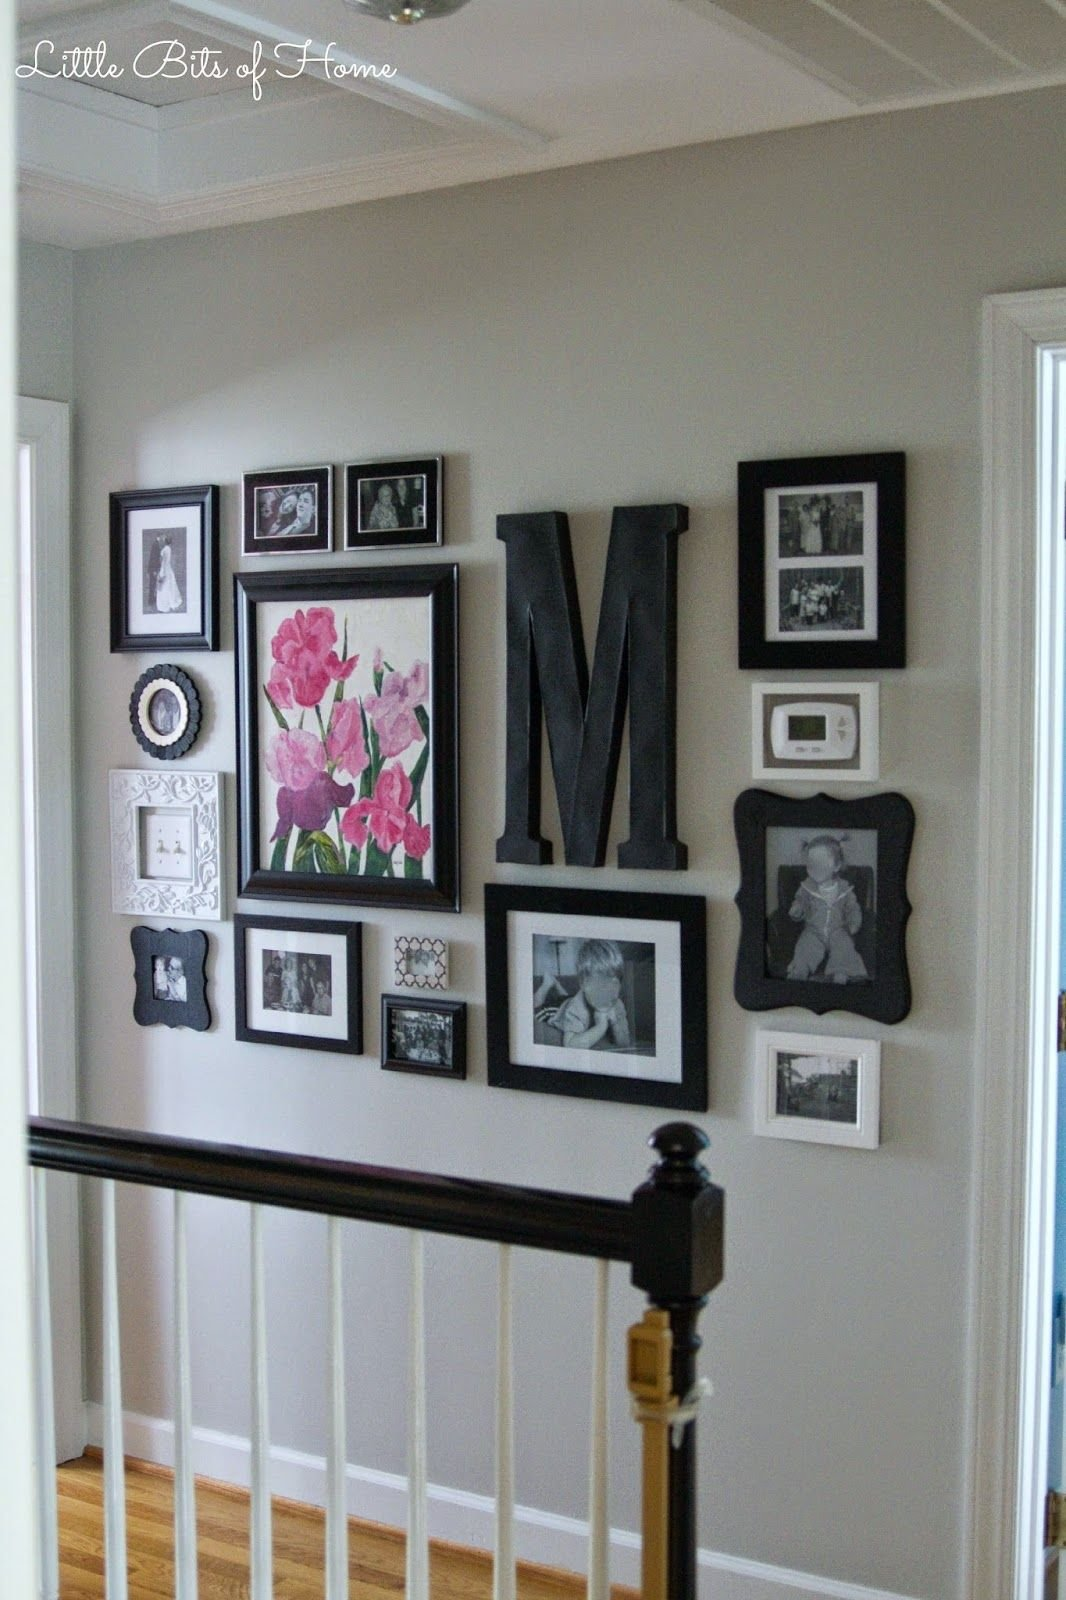 Best Little Bits Of Home Hallway Gallery Wall Gallery Walls With Pictures